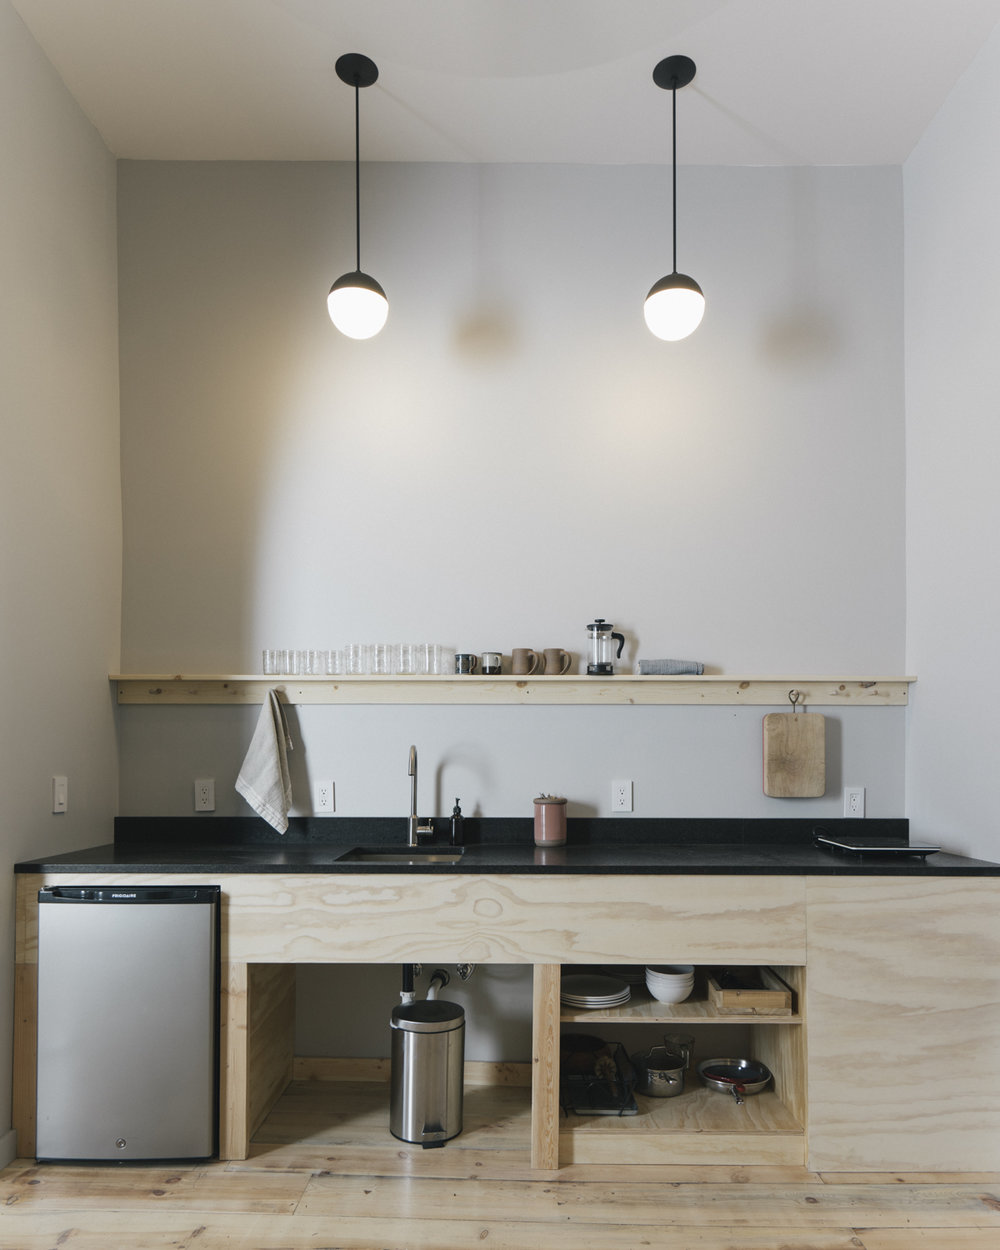 The perfectly simple and well equipped kitchenette